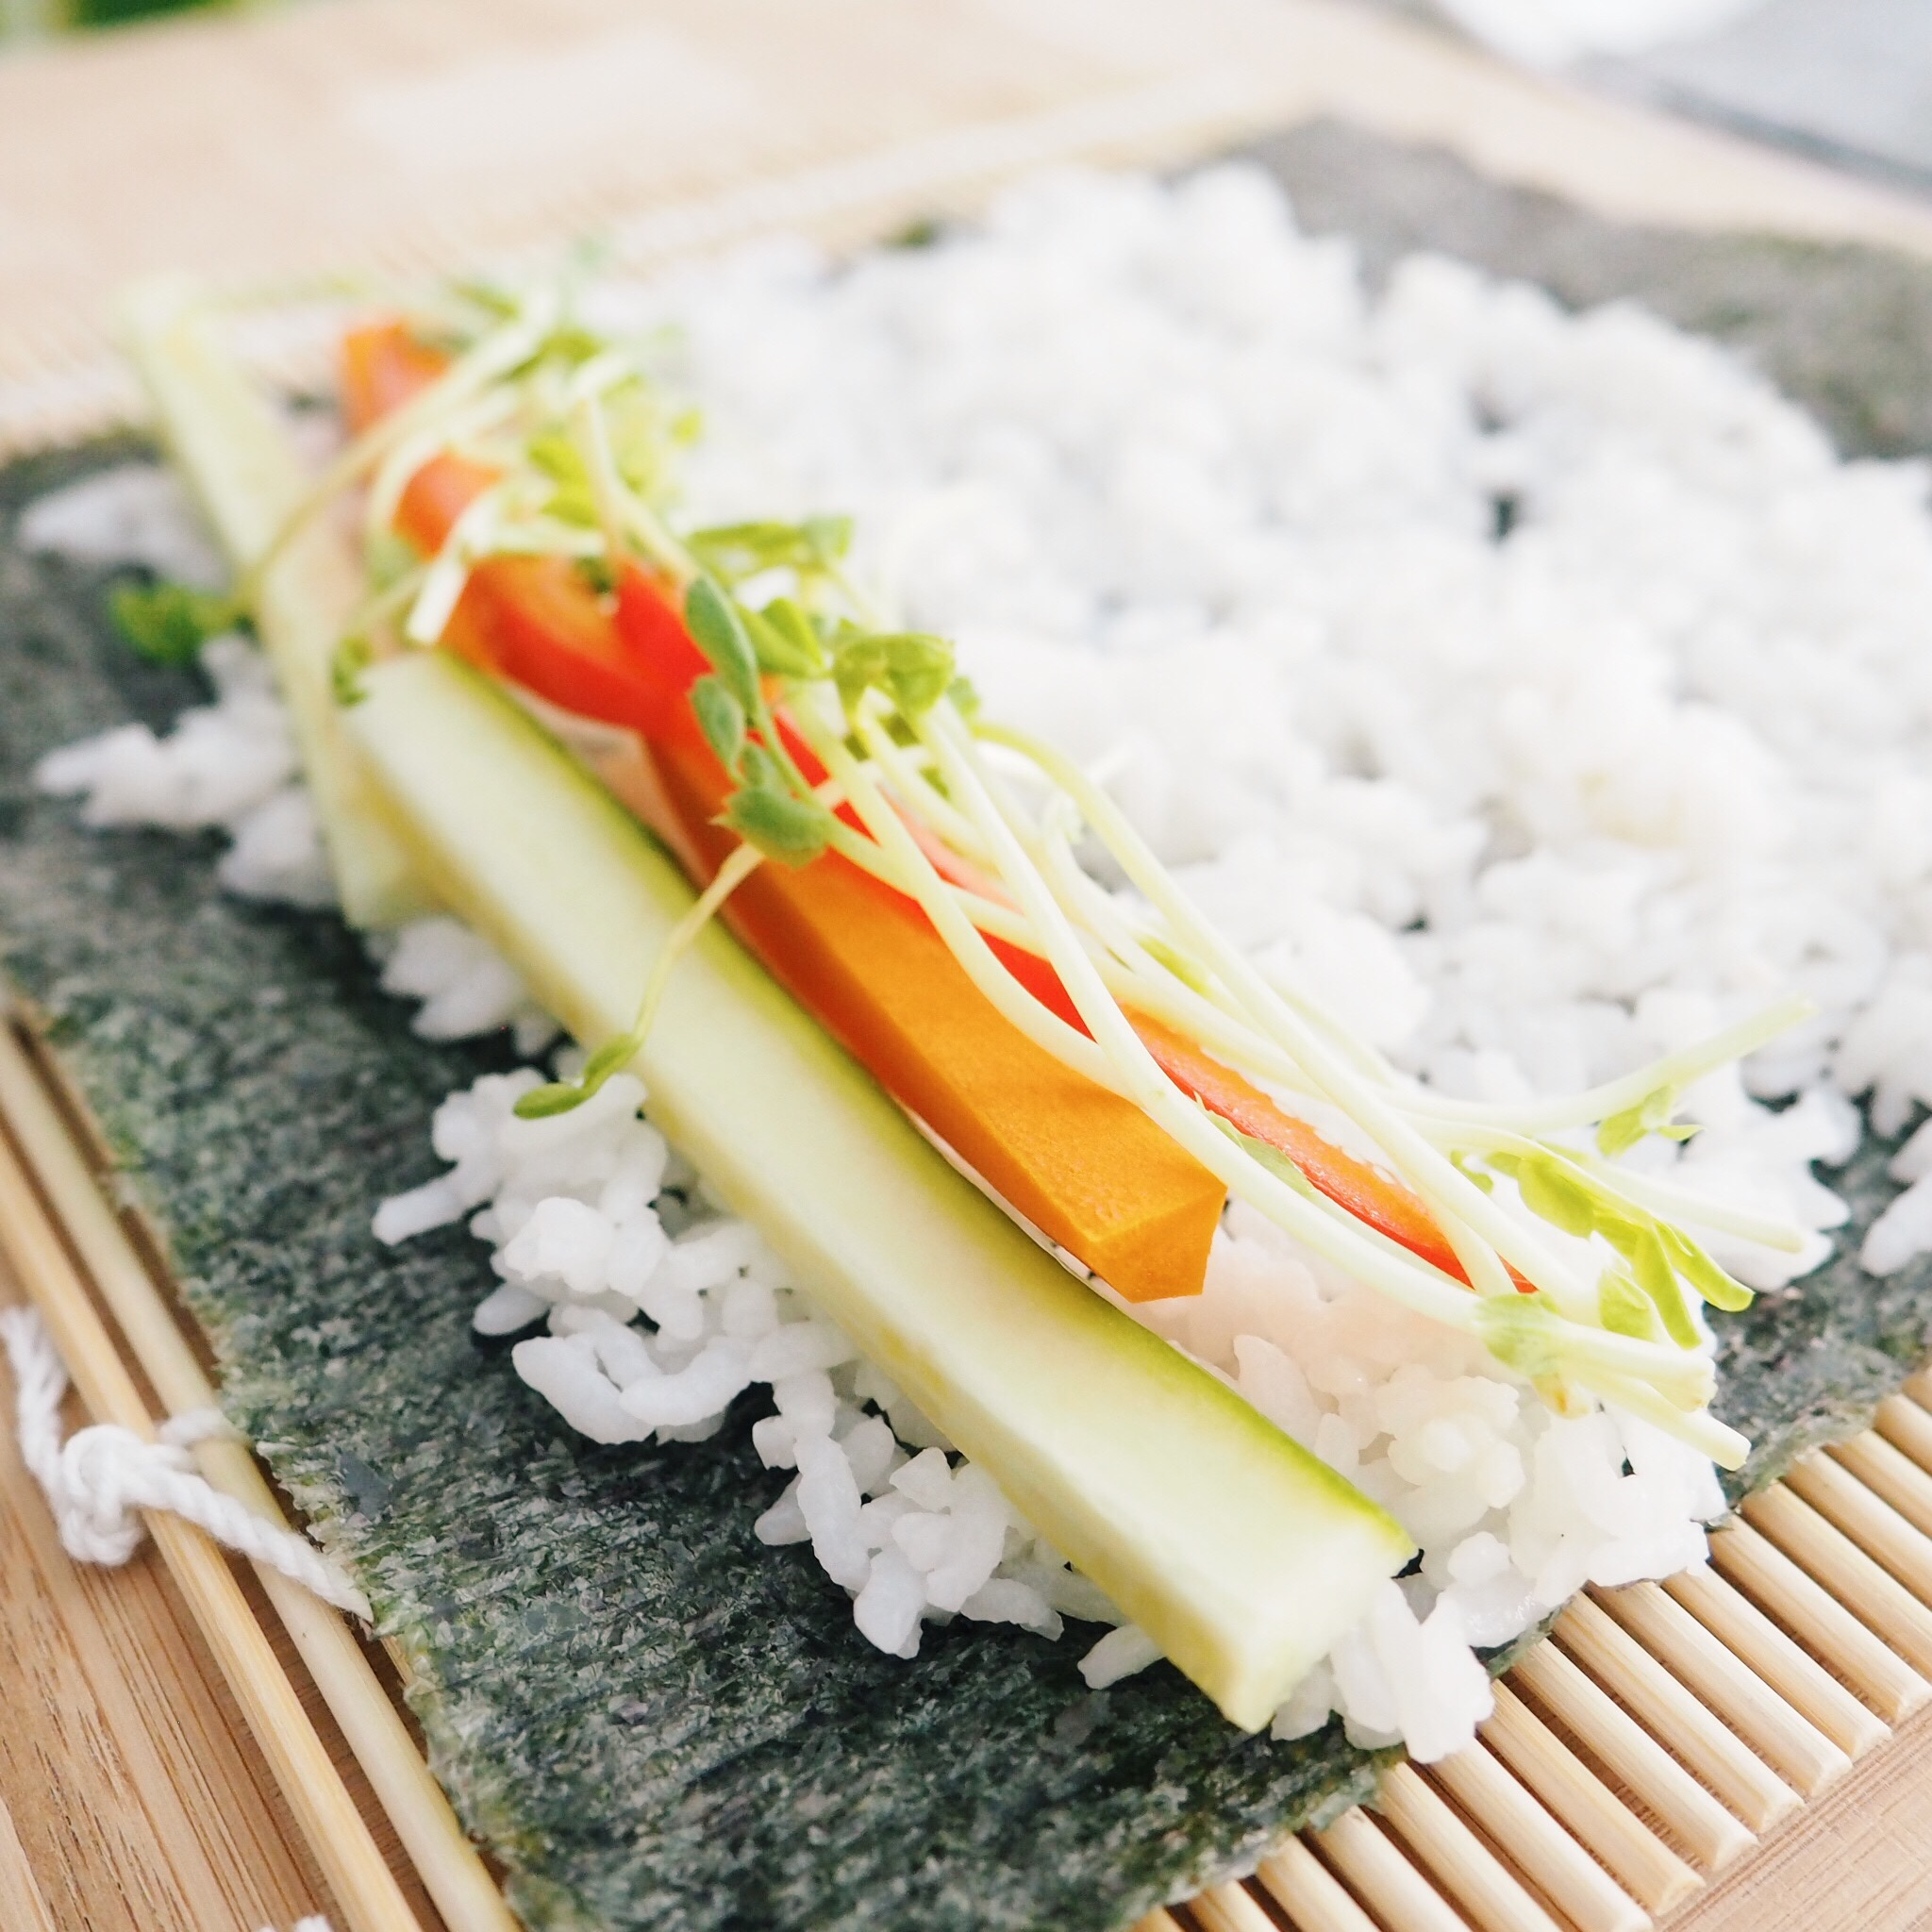 Step 3: At the base of your rice, add a strip of the vegetables.  Try not to overload it or it will be difficult to roll.